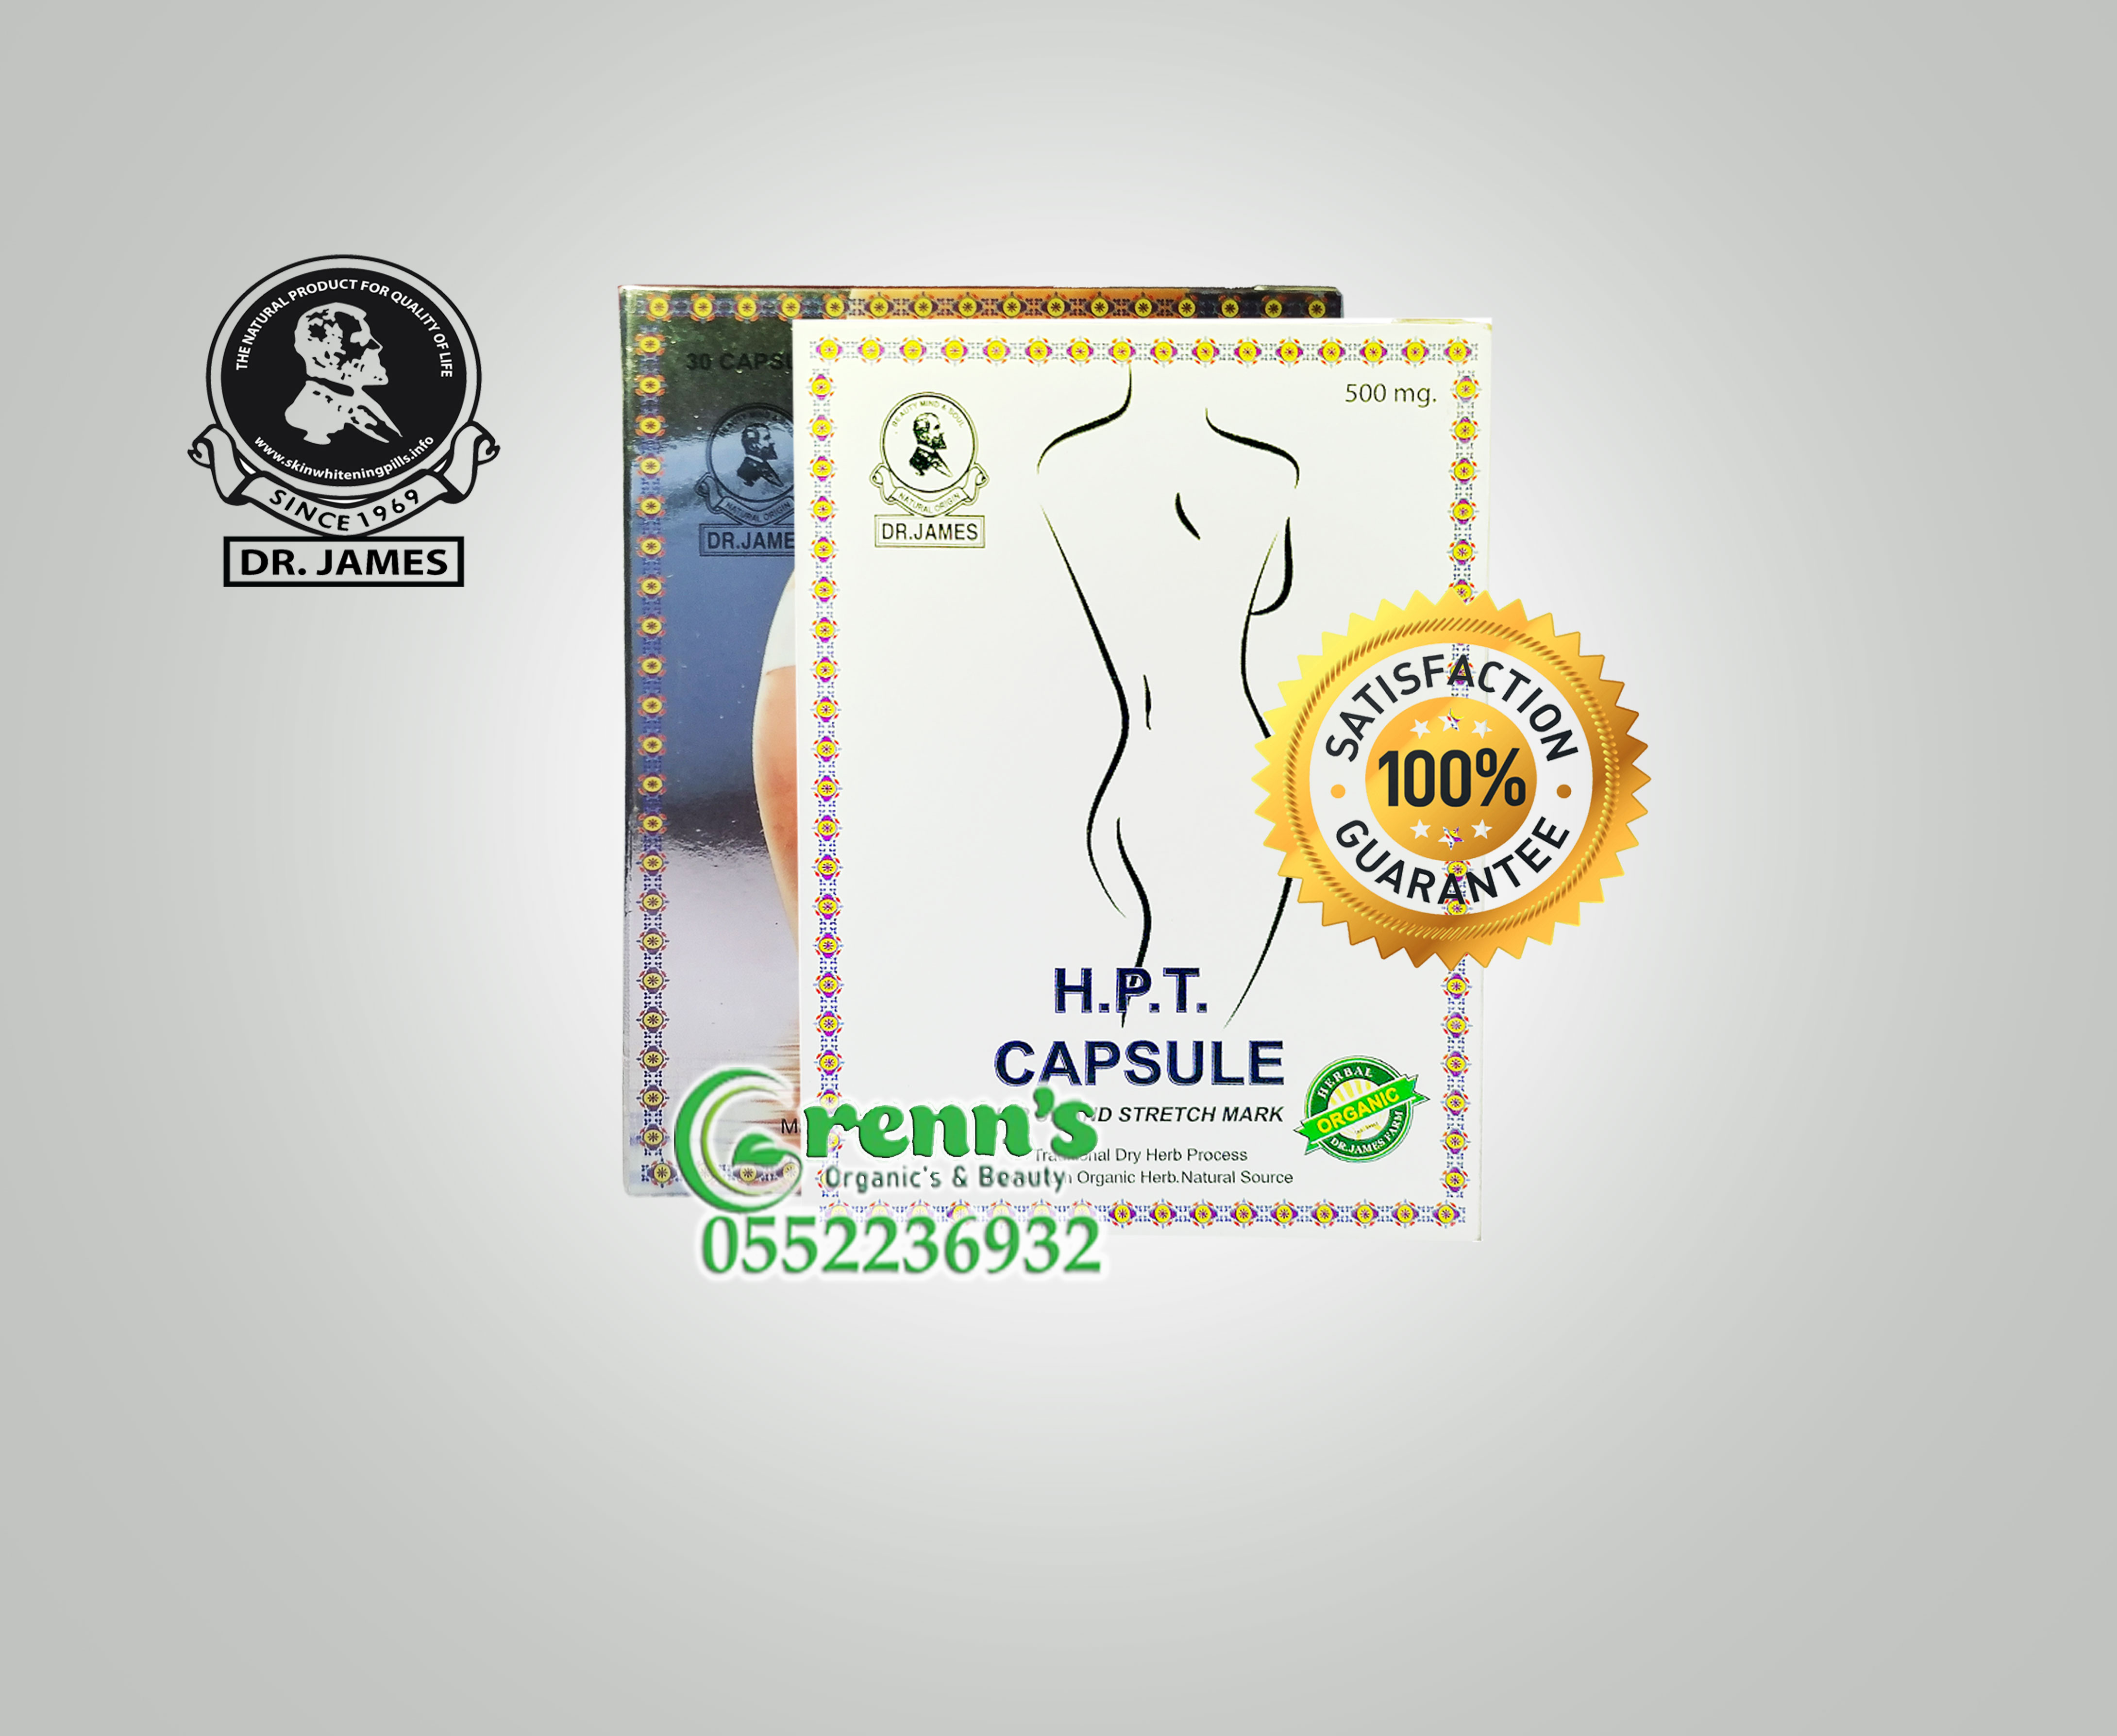 Dr james butts and hips enlargement pills